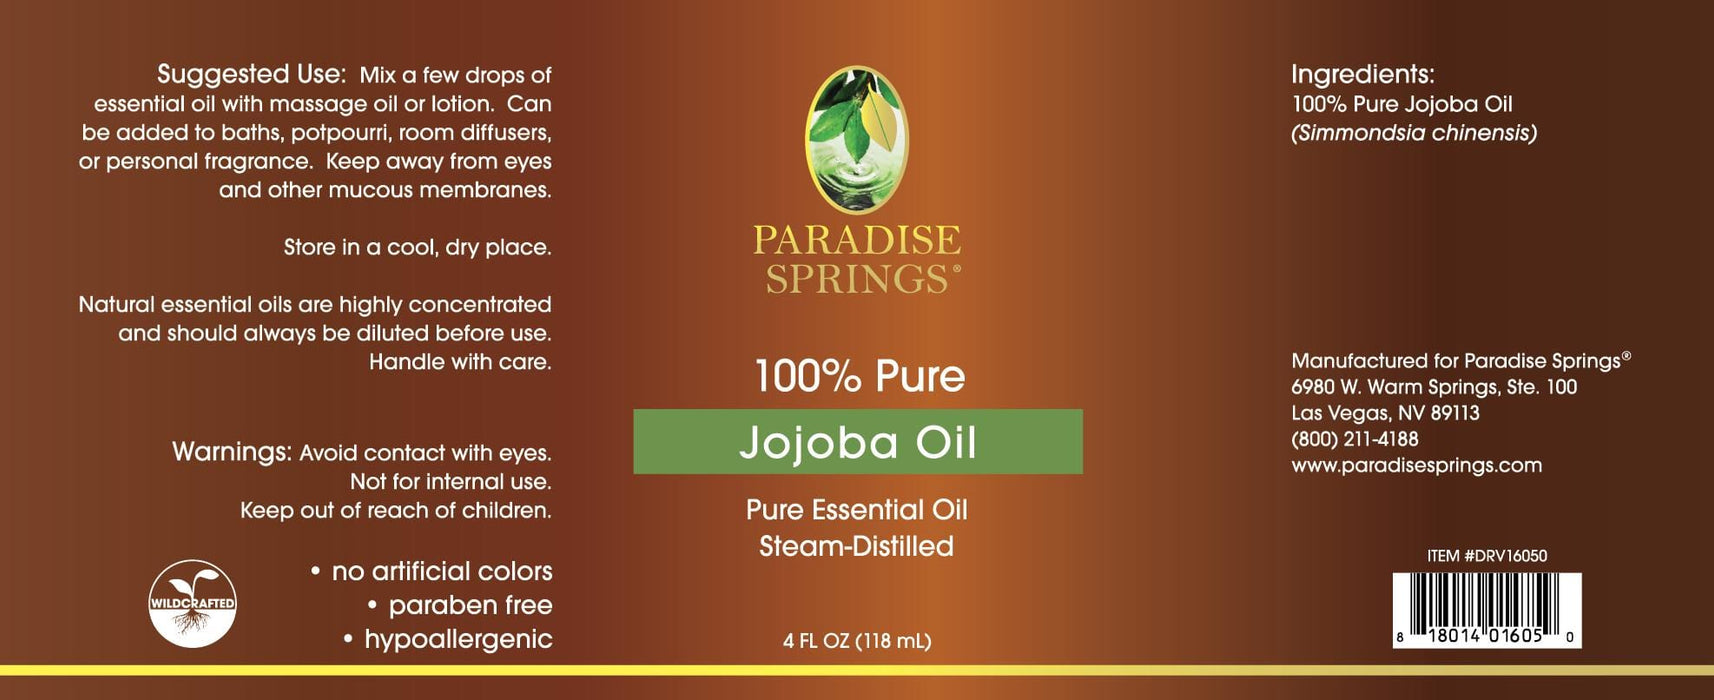 Paradise Springs JoJoba Oil Label